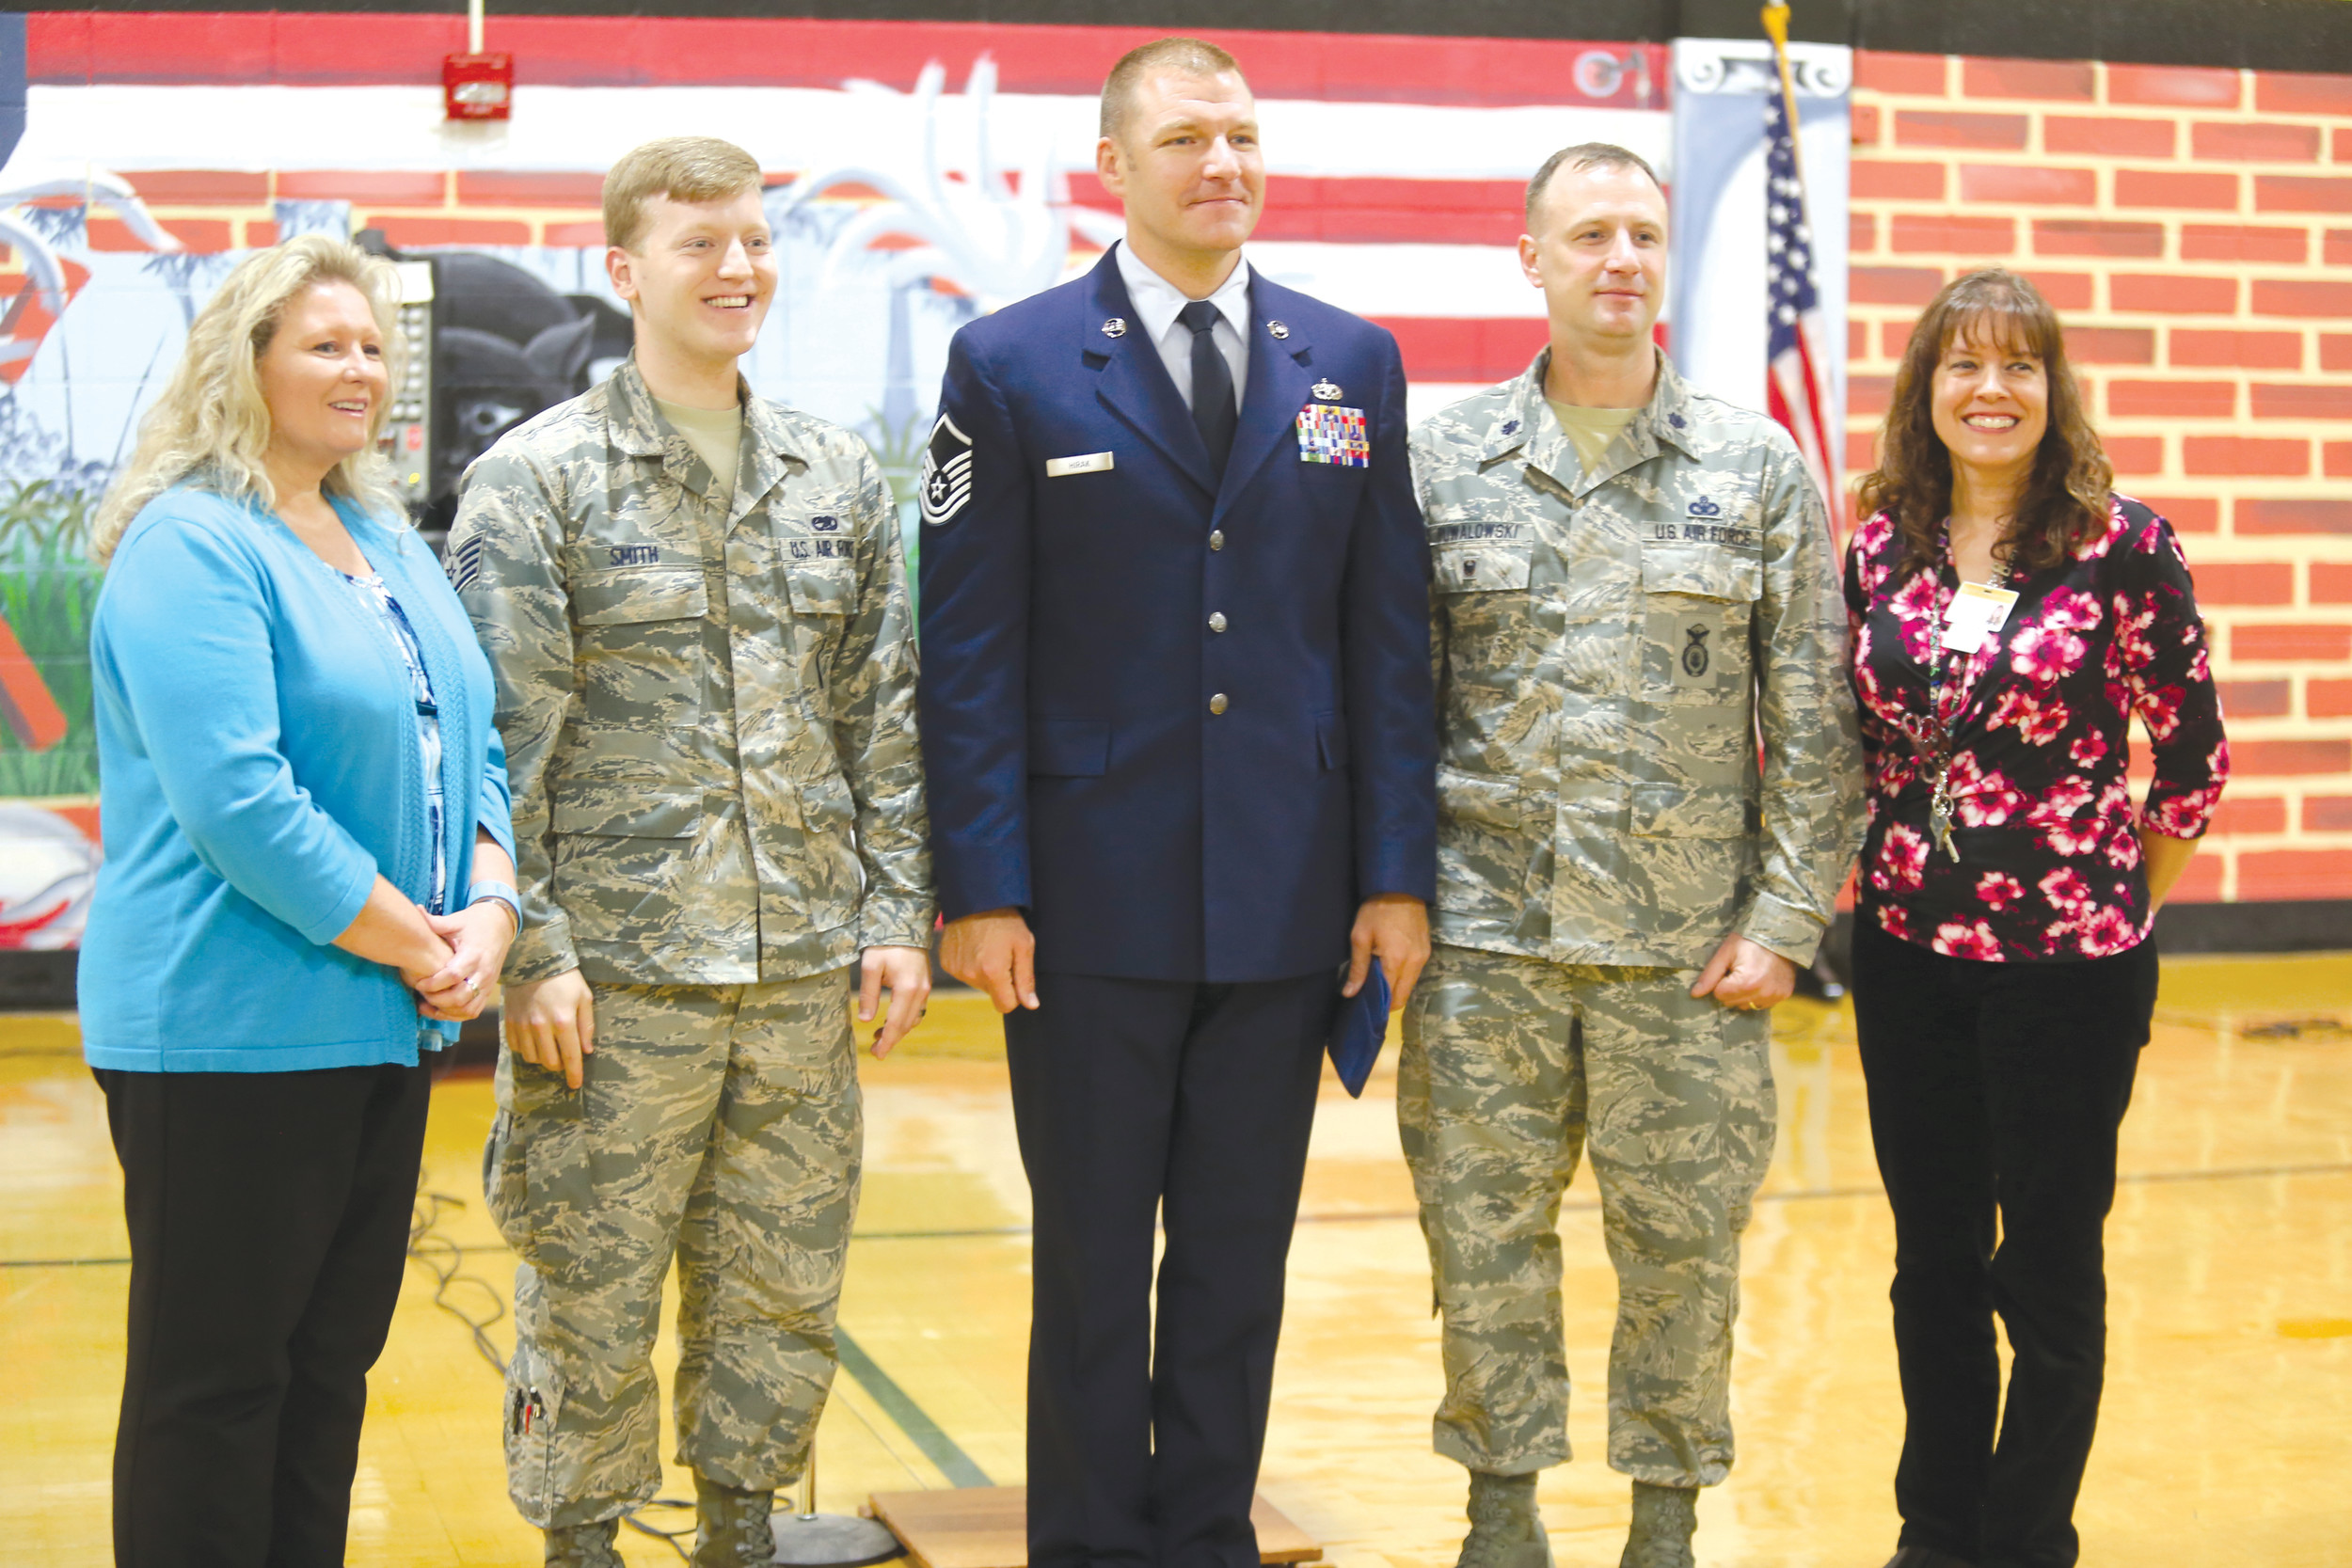 The three military speakers at Thursday's Veterans Day program at High Hills Elementary pose with school officials. From left is Principal Mary Kay Norton, Staff Sgt. Jimmy Smith, Master Sgt. Christopher Hirak, Lt. Col. Nathan Puwalowski and school Instructional Coach Anja Comerford.